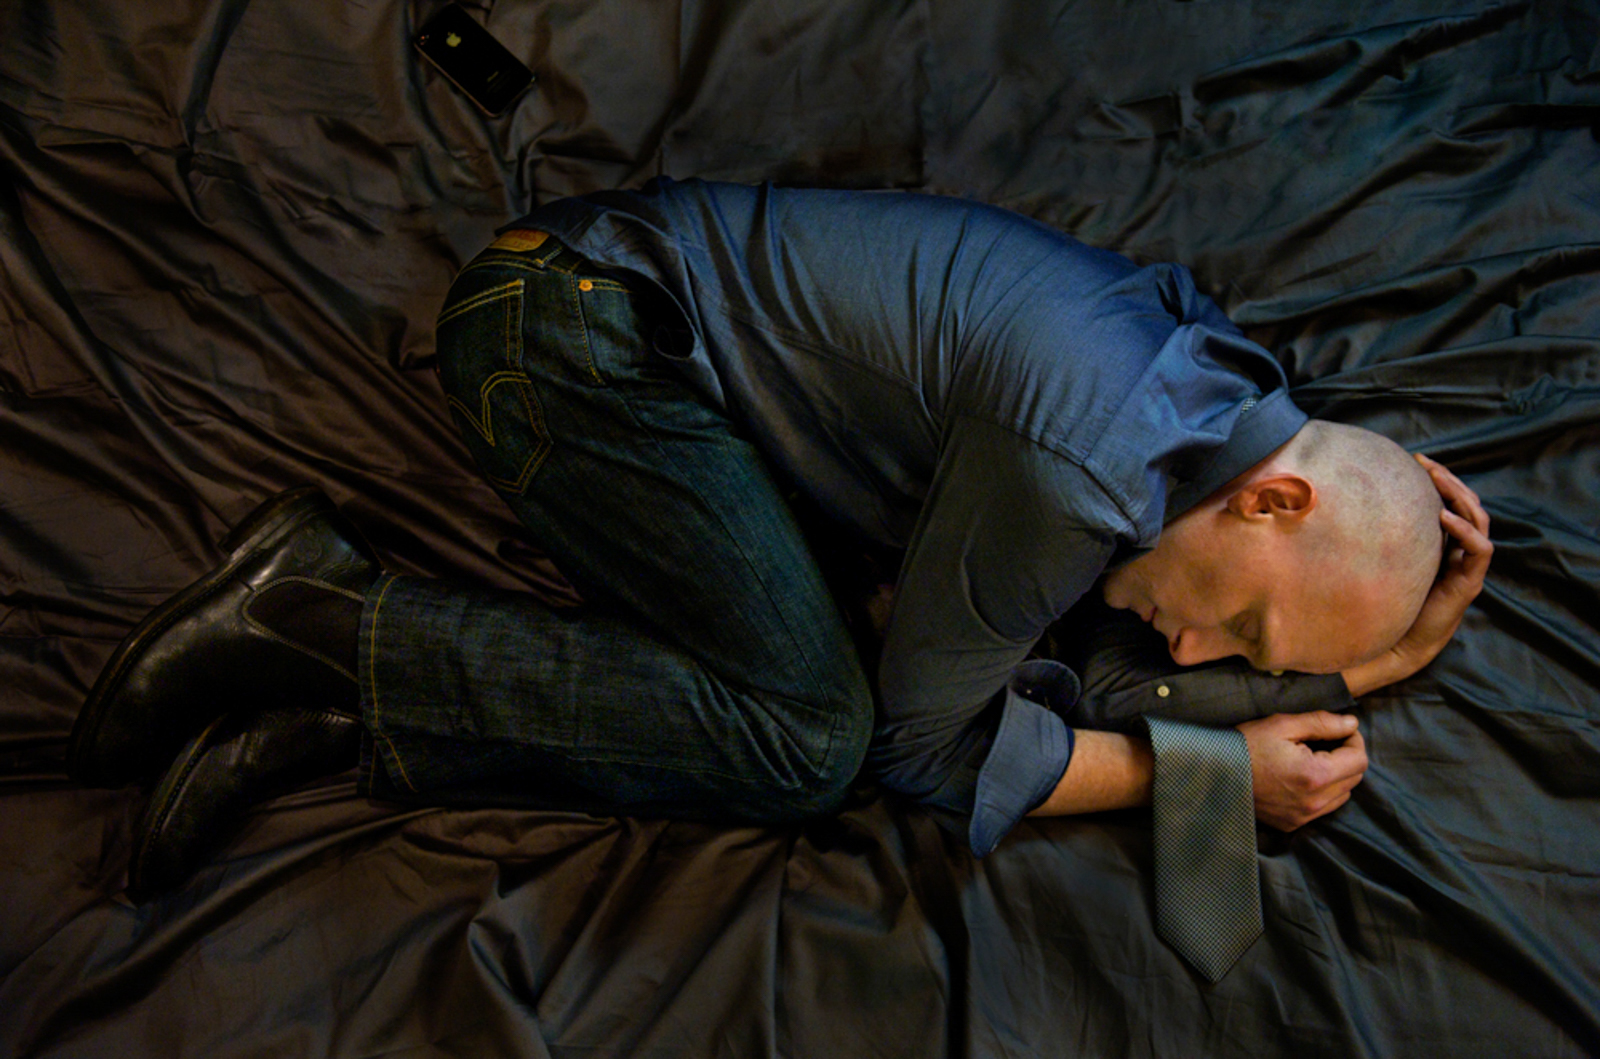 Overhead portrait of man lying in bed, with eyes closed